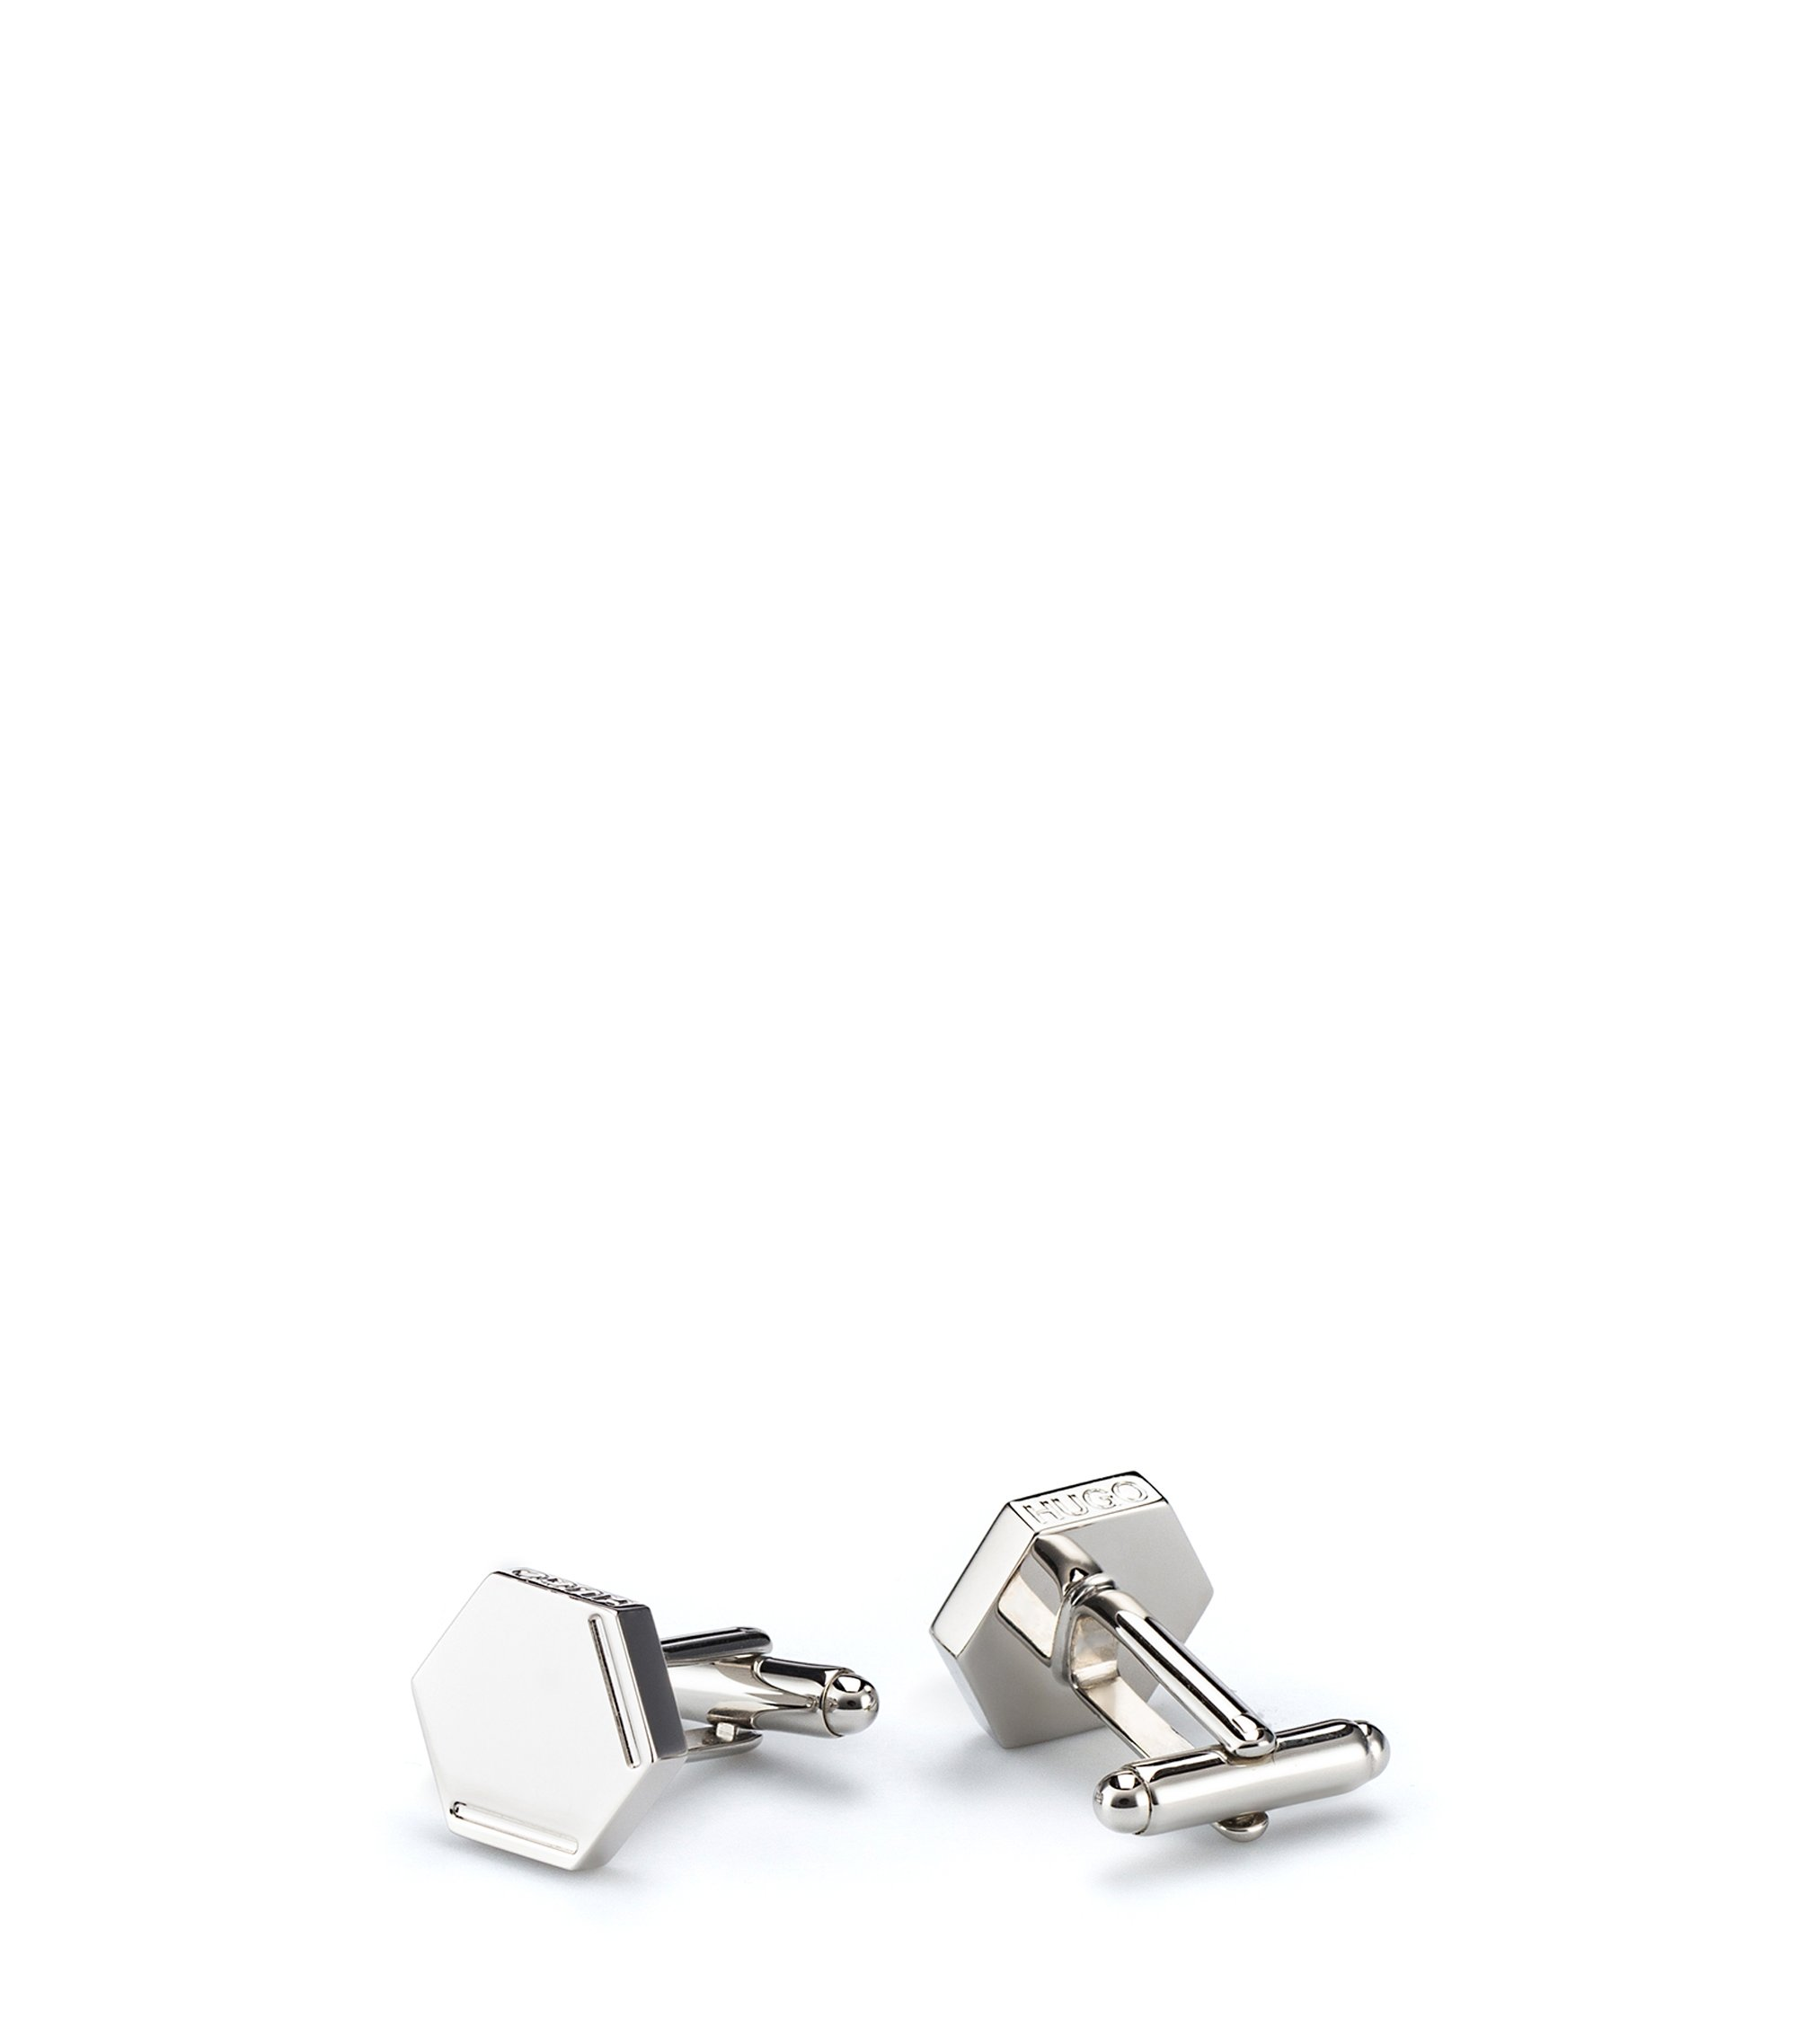 Hexagonal cufflinks in highly polished brass with engraved logo, Silver